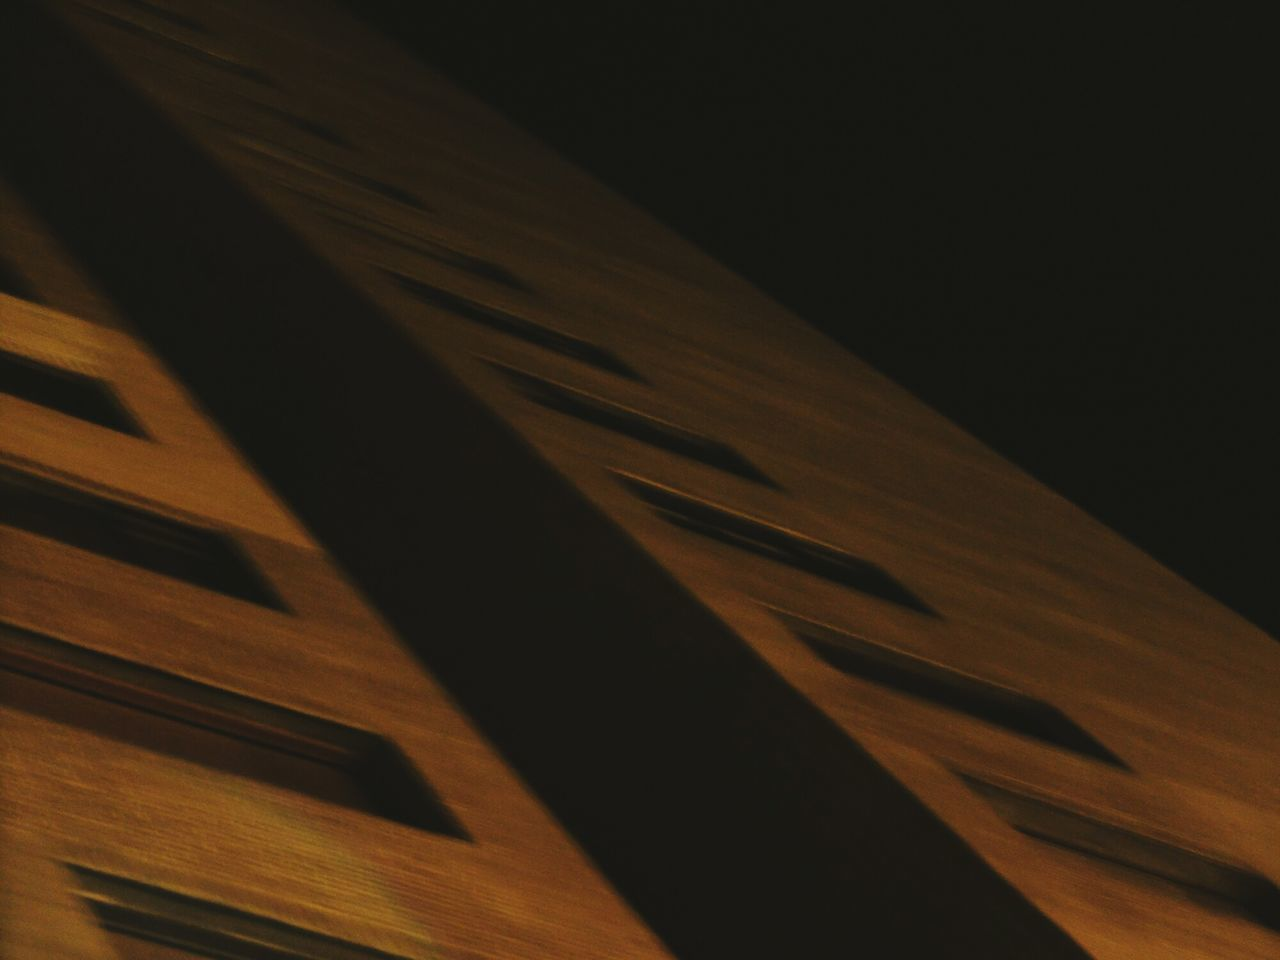 wood - material, no people, pattern, close-up, low angle view, indoors, day, black background